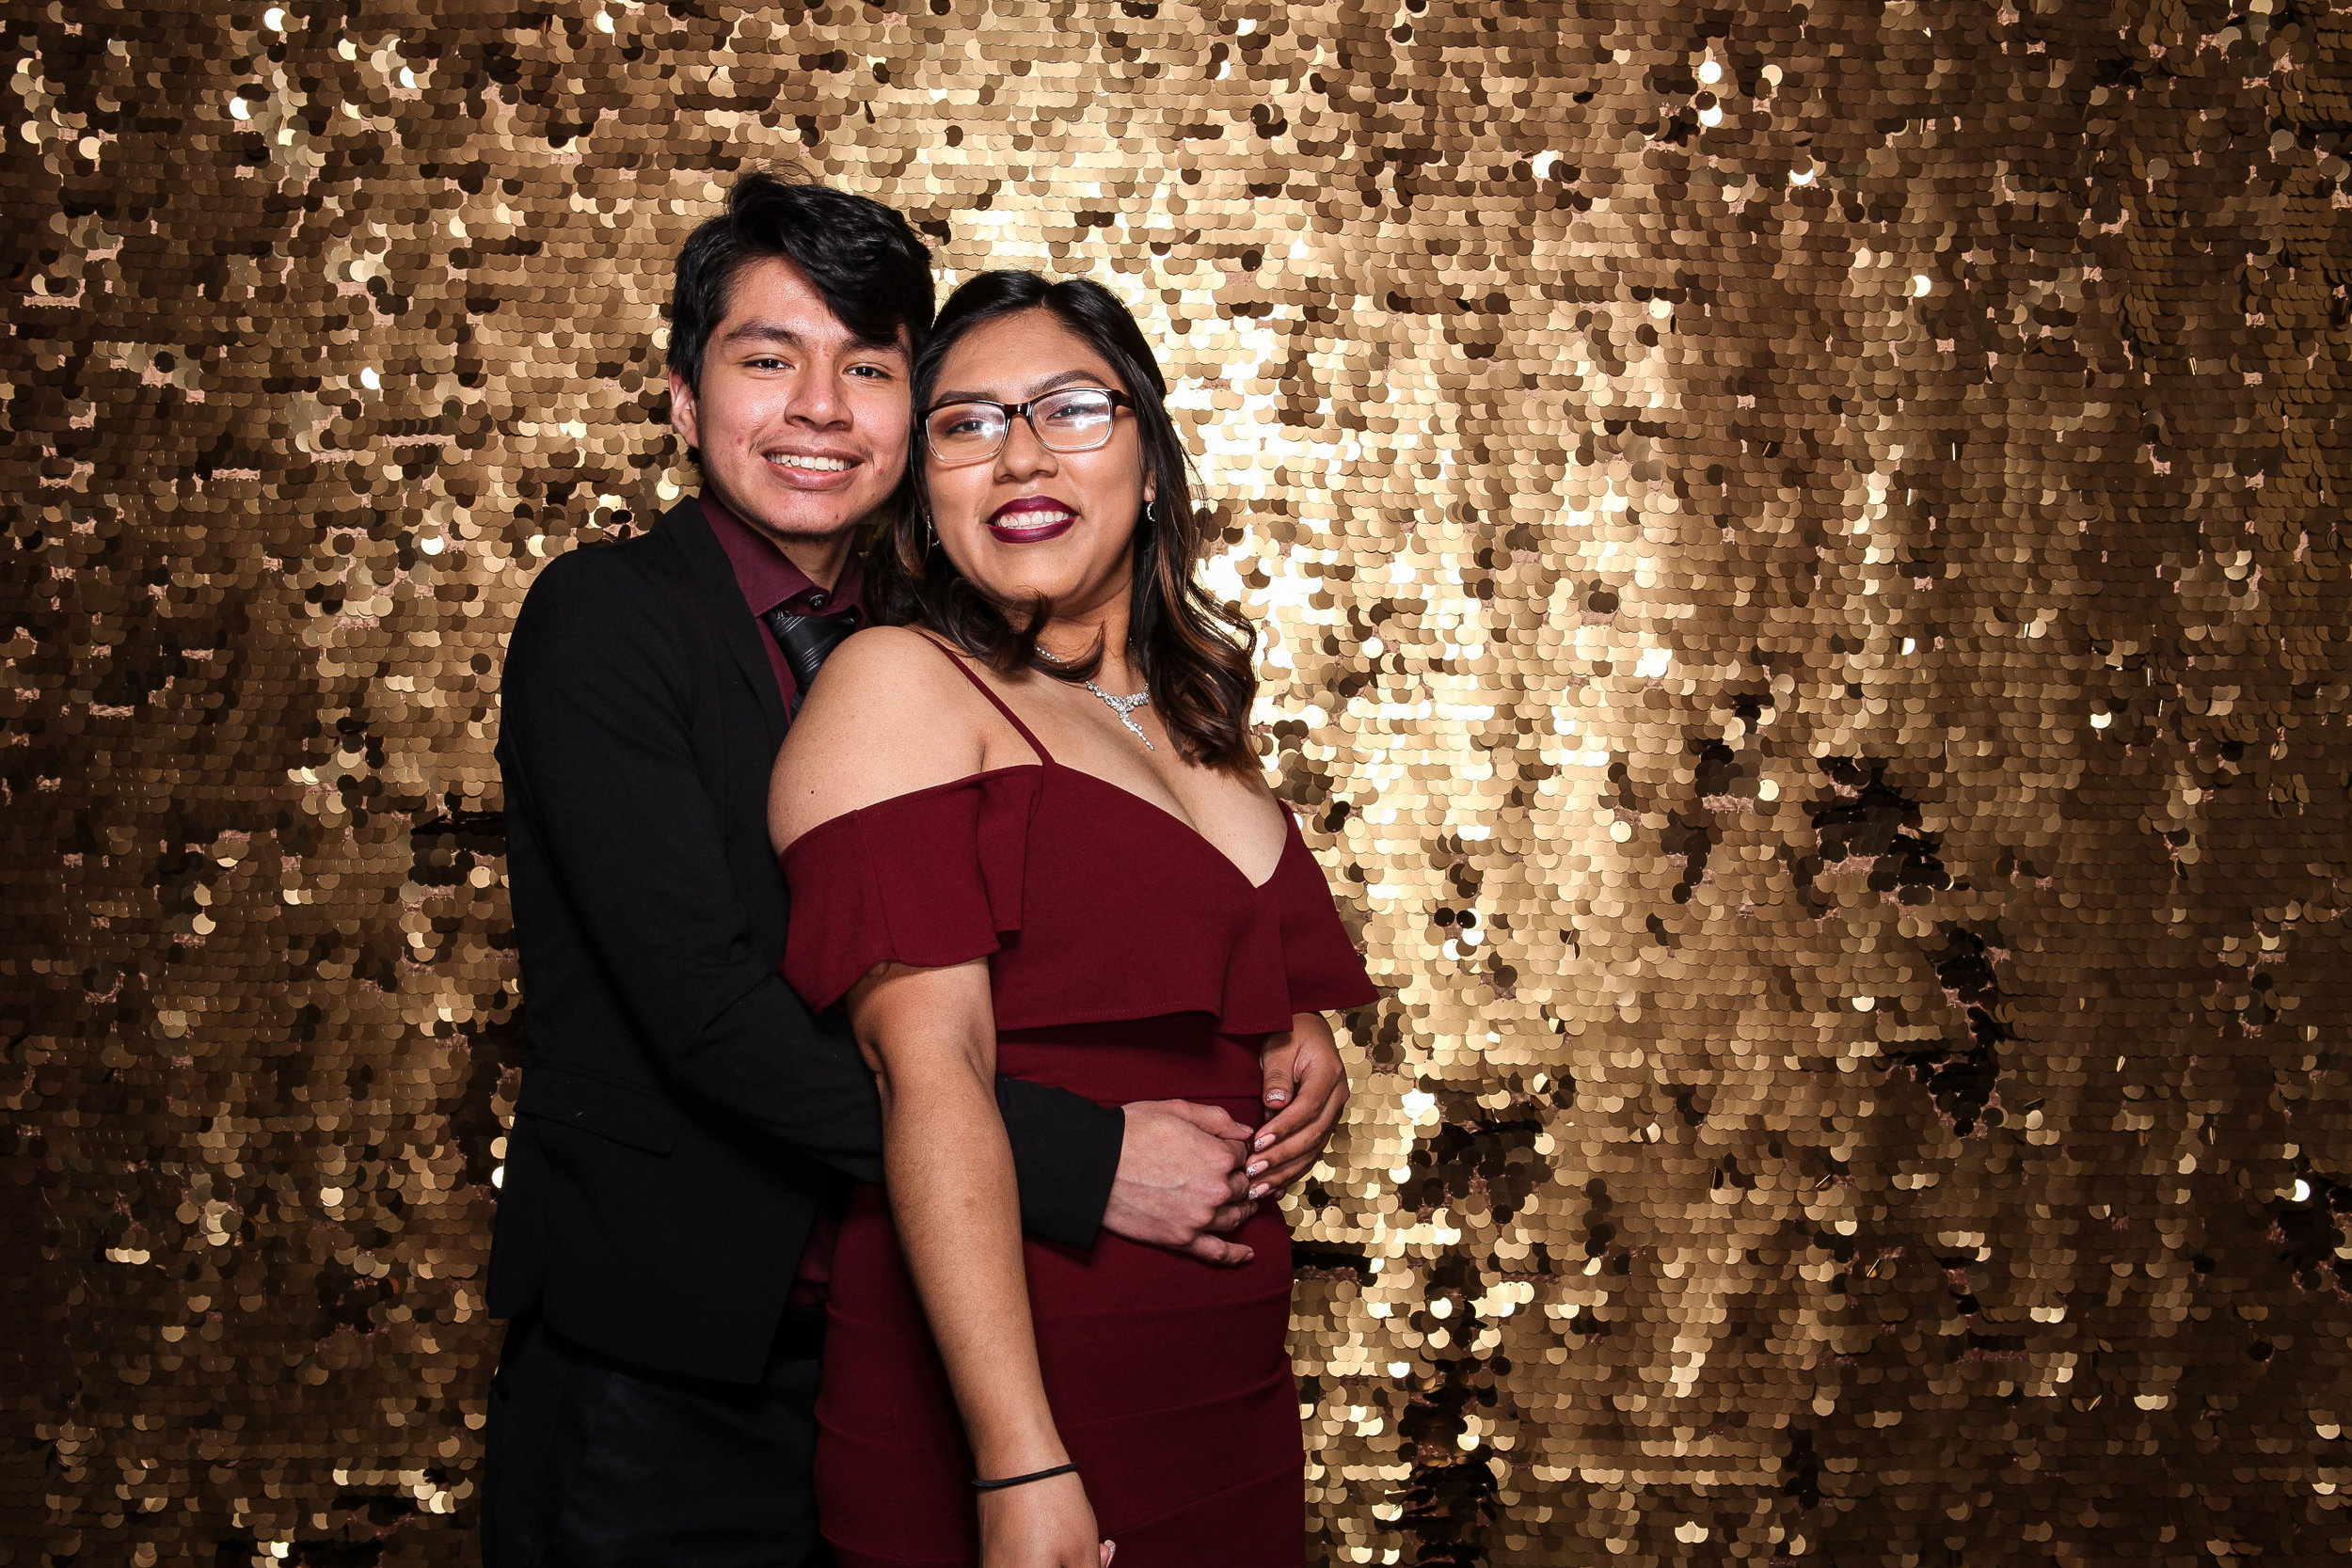 20190503_Adelphi_Senior_Formal-349.jpg